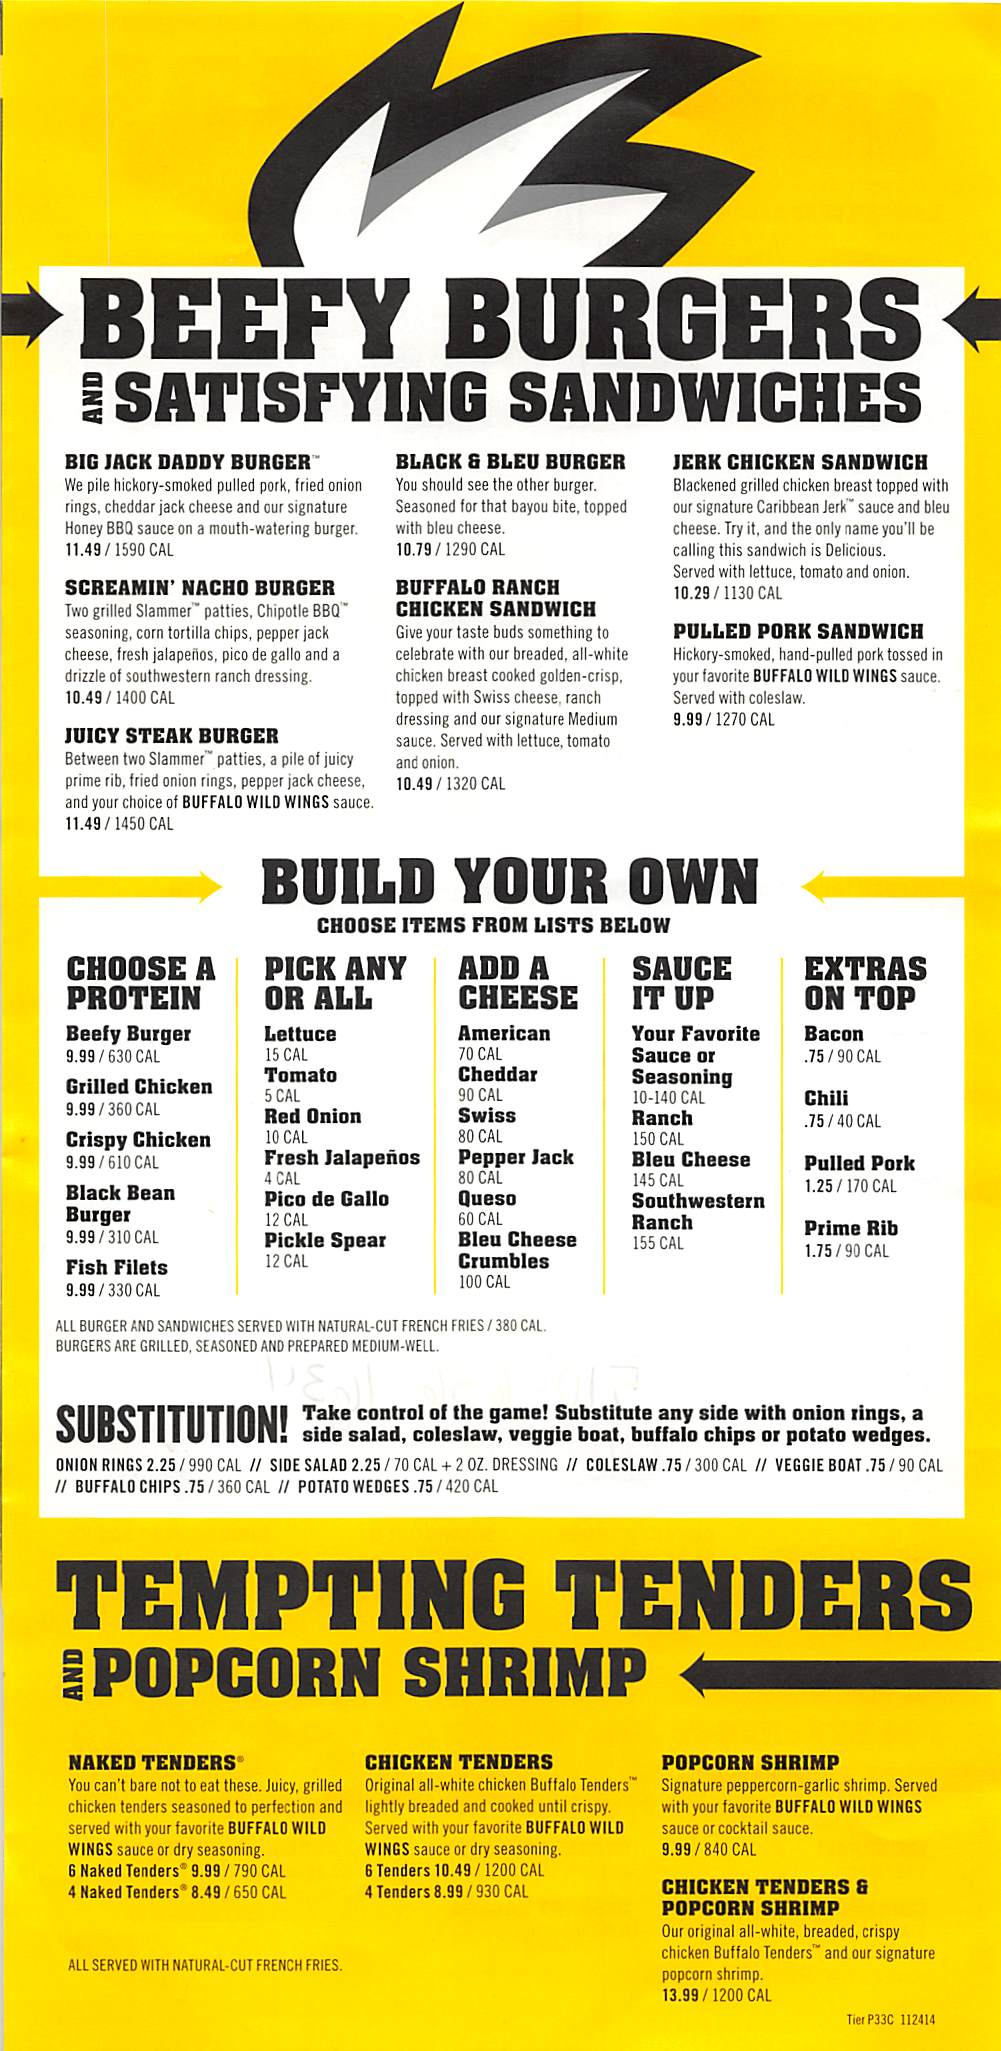 BUFFALO WILD WINGS – Treat yourself to the great flavors that are known around the world from the famous franchise. COOKING INDOORS OR OUT – Make amazingly tender and flavorful meals using the BBQ, Grill, Oven or Crock-Pot.